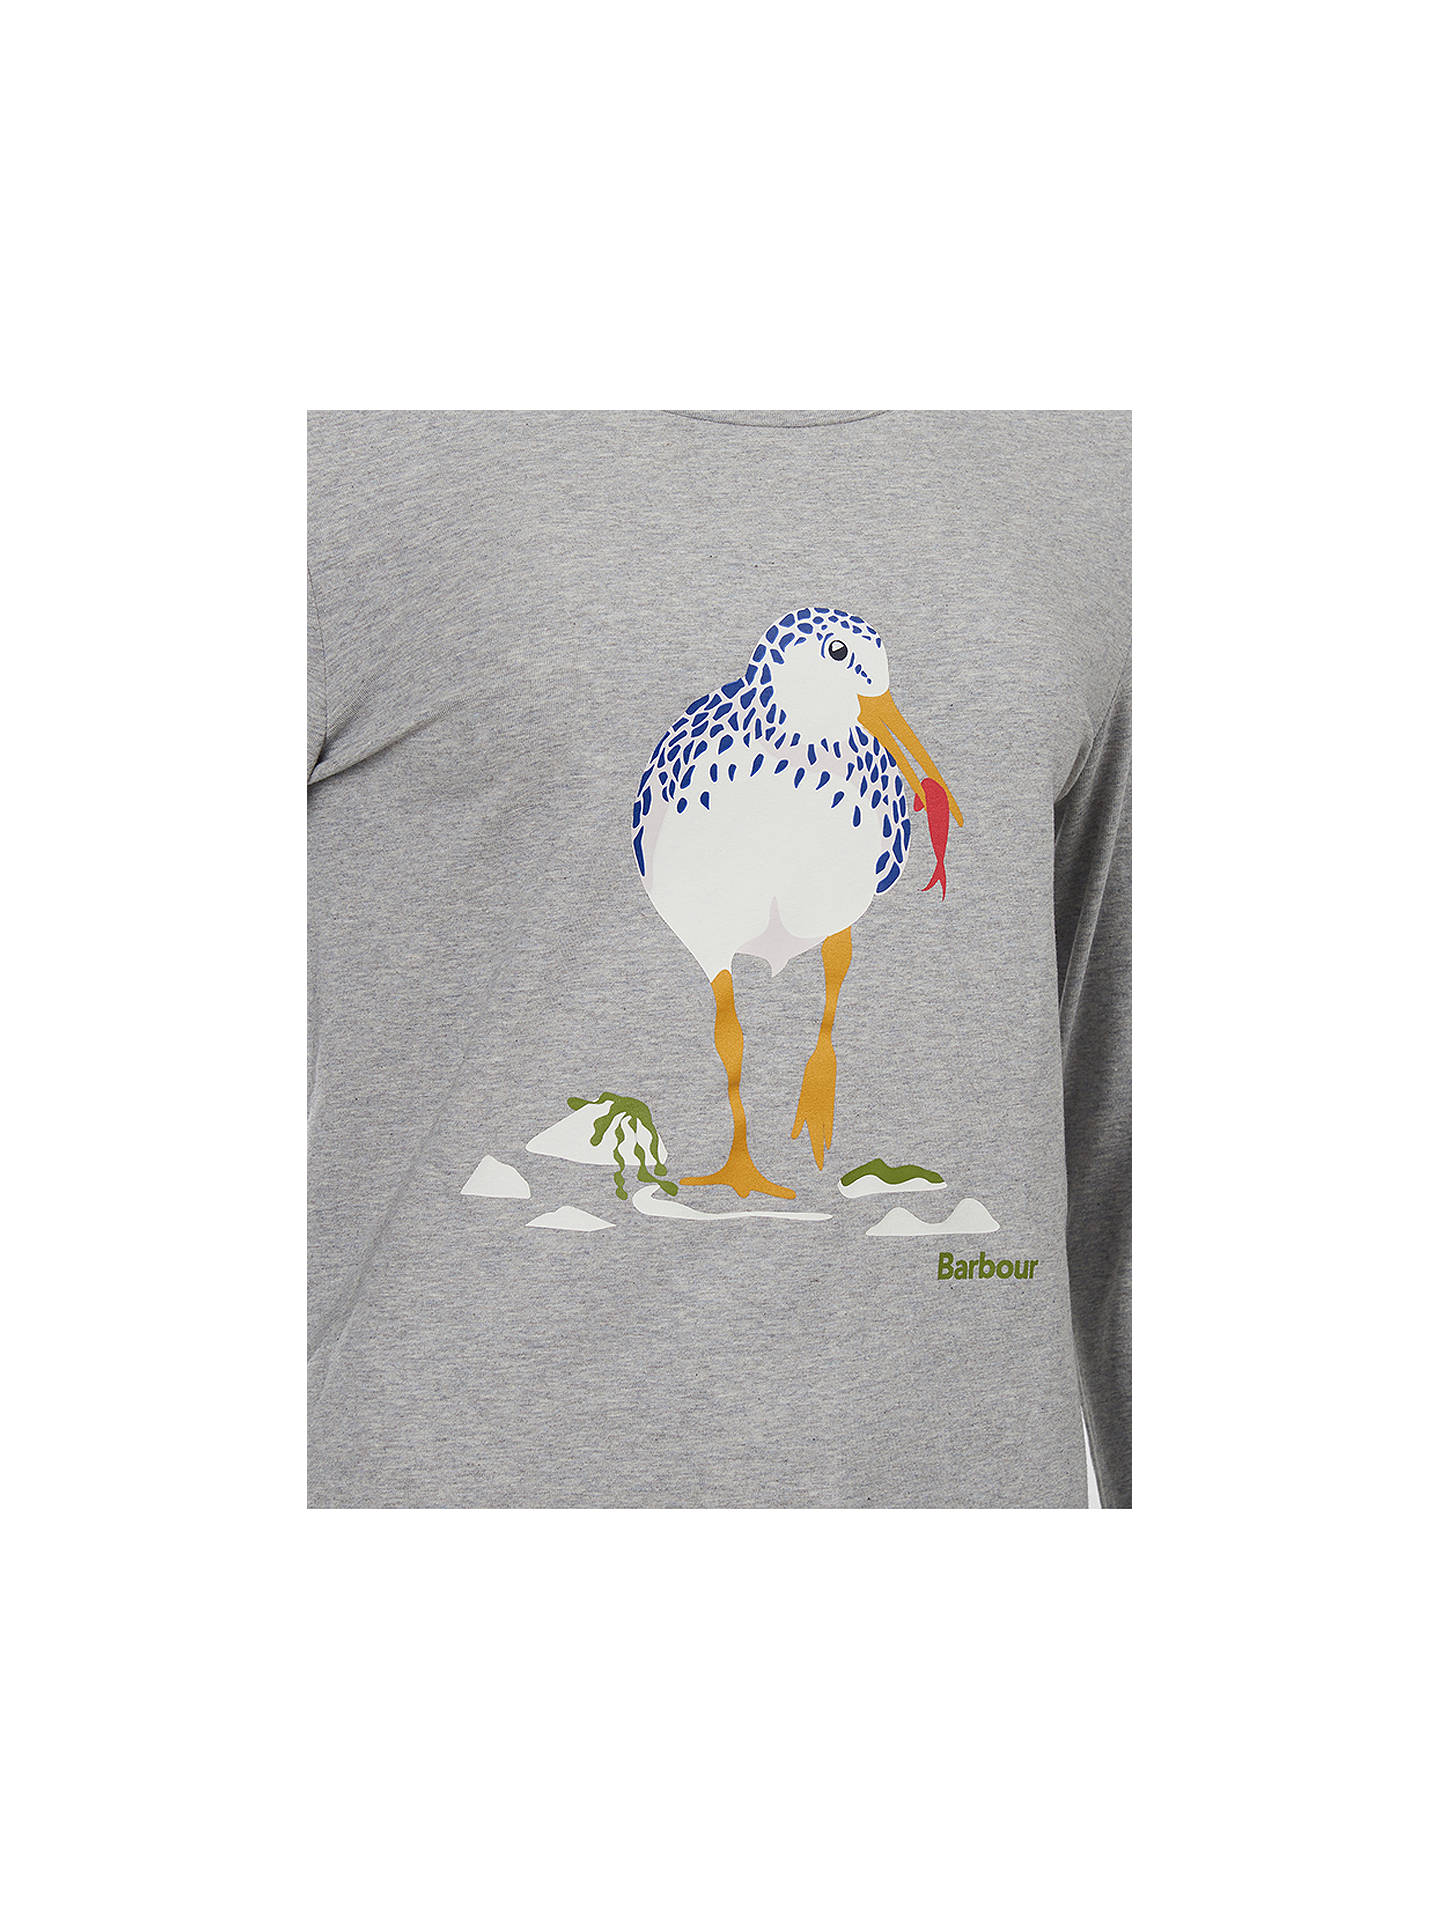 Buy Barbour Coastal Boscombe Seagull Print T-Shirt, Grey Marl, 18 Online at johnlewis.com